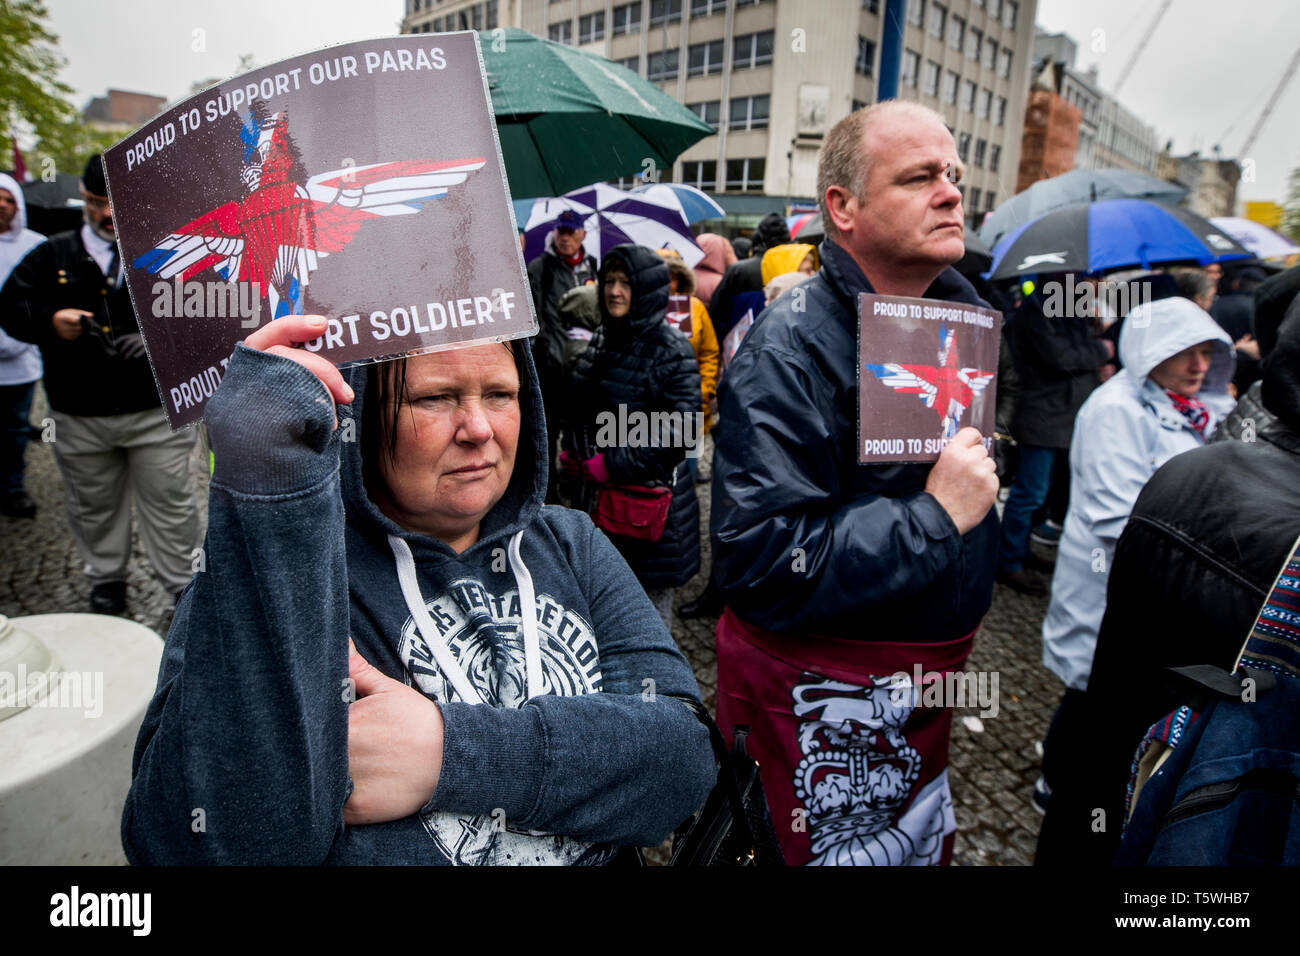 Protesters outside Belfast City Hall during a rally for soldier F, a former paratrooper who is due to stand trial for murder and attempted murder for his role in the 1972 Bloody Sunday killings. - Stock Image